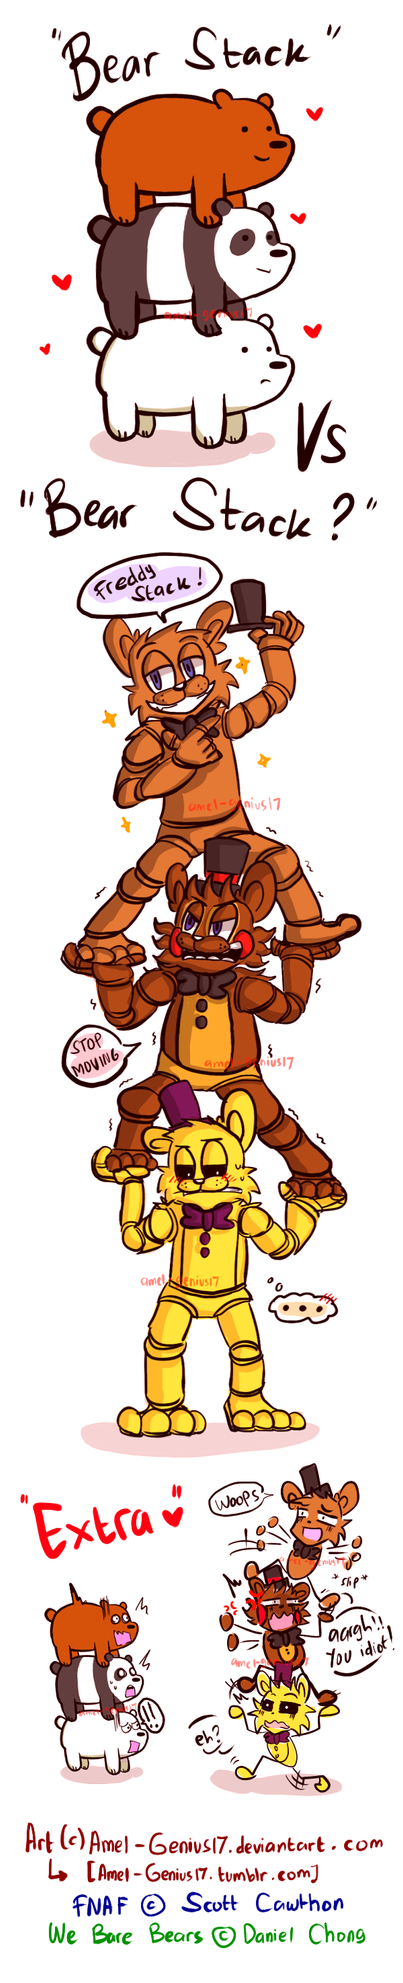 =FNAF/WBB= Bear Stack vs Bear stack?!! (doodle) by Amel-Genius17